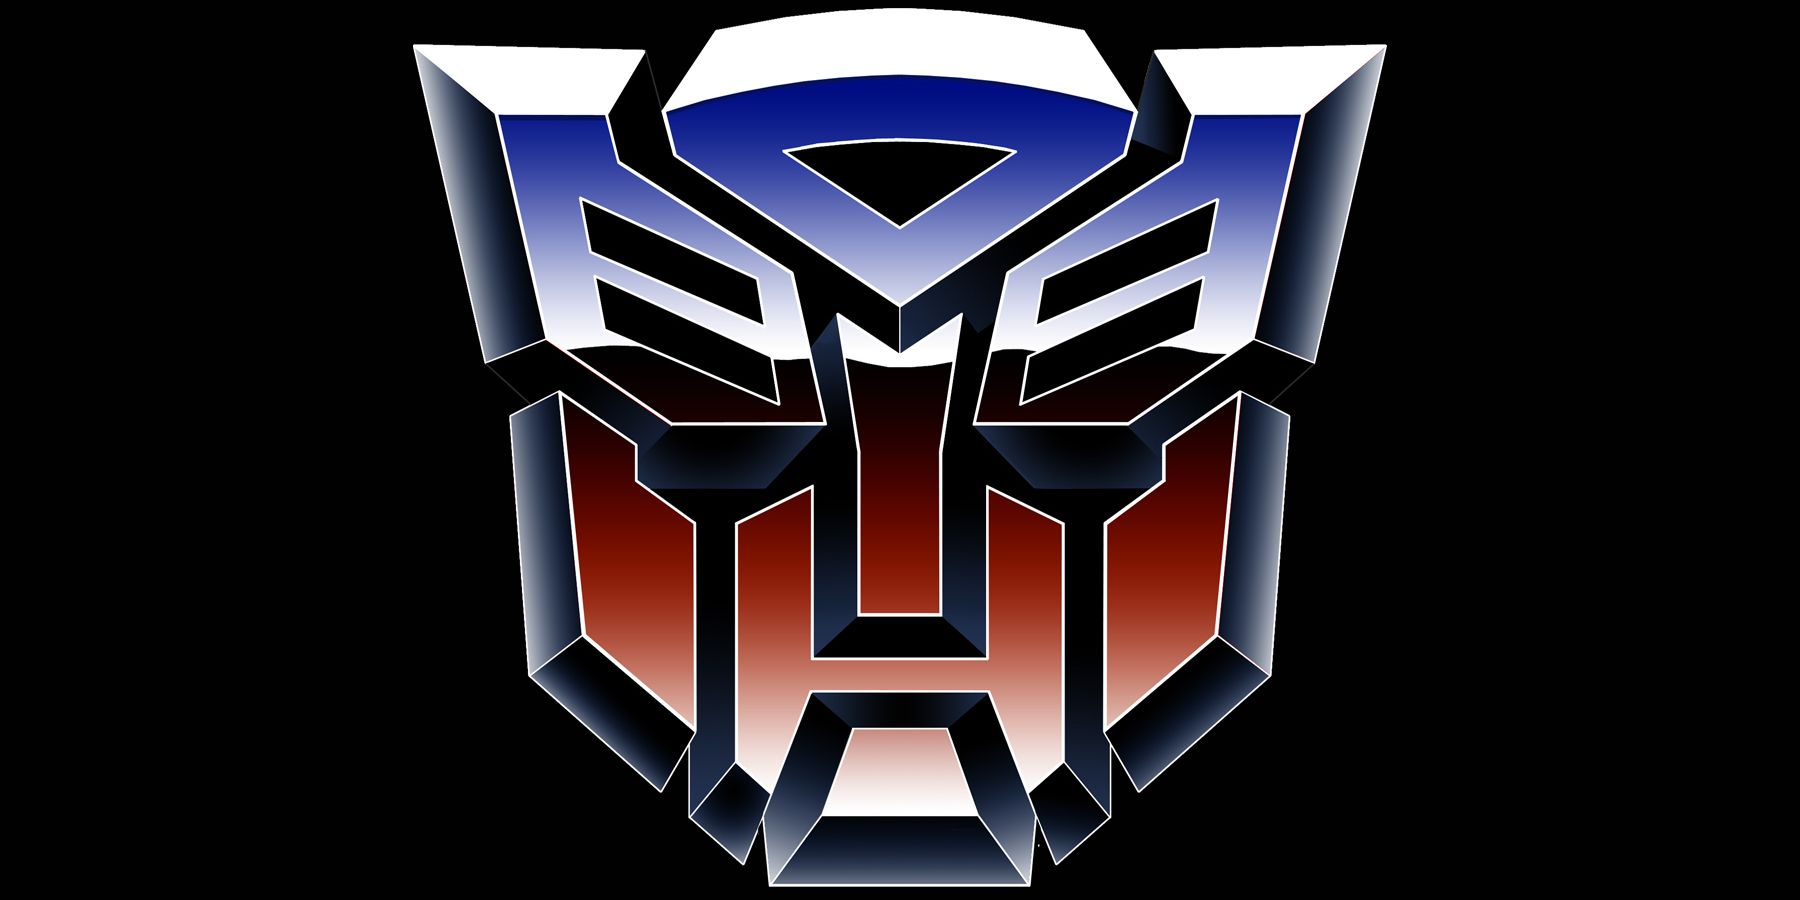 Imagenes De Transformers: Transformers: The Last Knight Production Logo Revealed